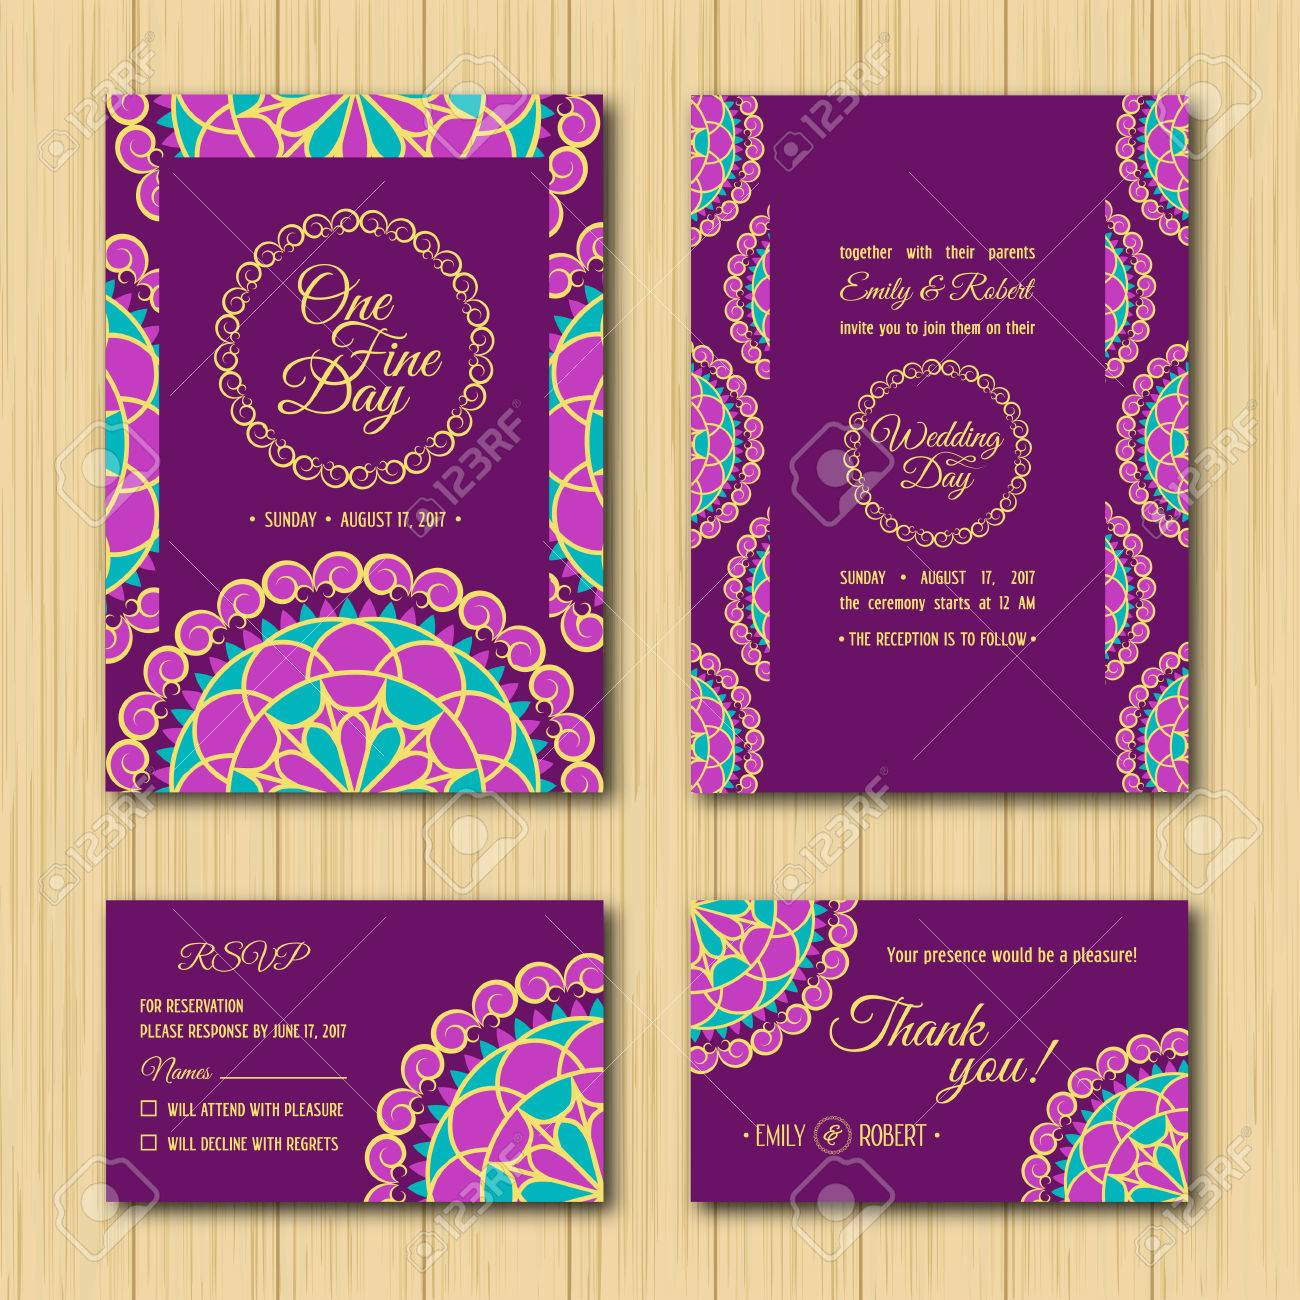 Wedding Invitations Sets: Save The Date And RSVP Cards. Turquoise ...